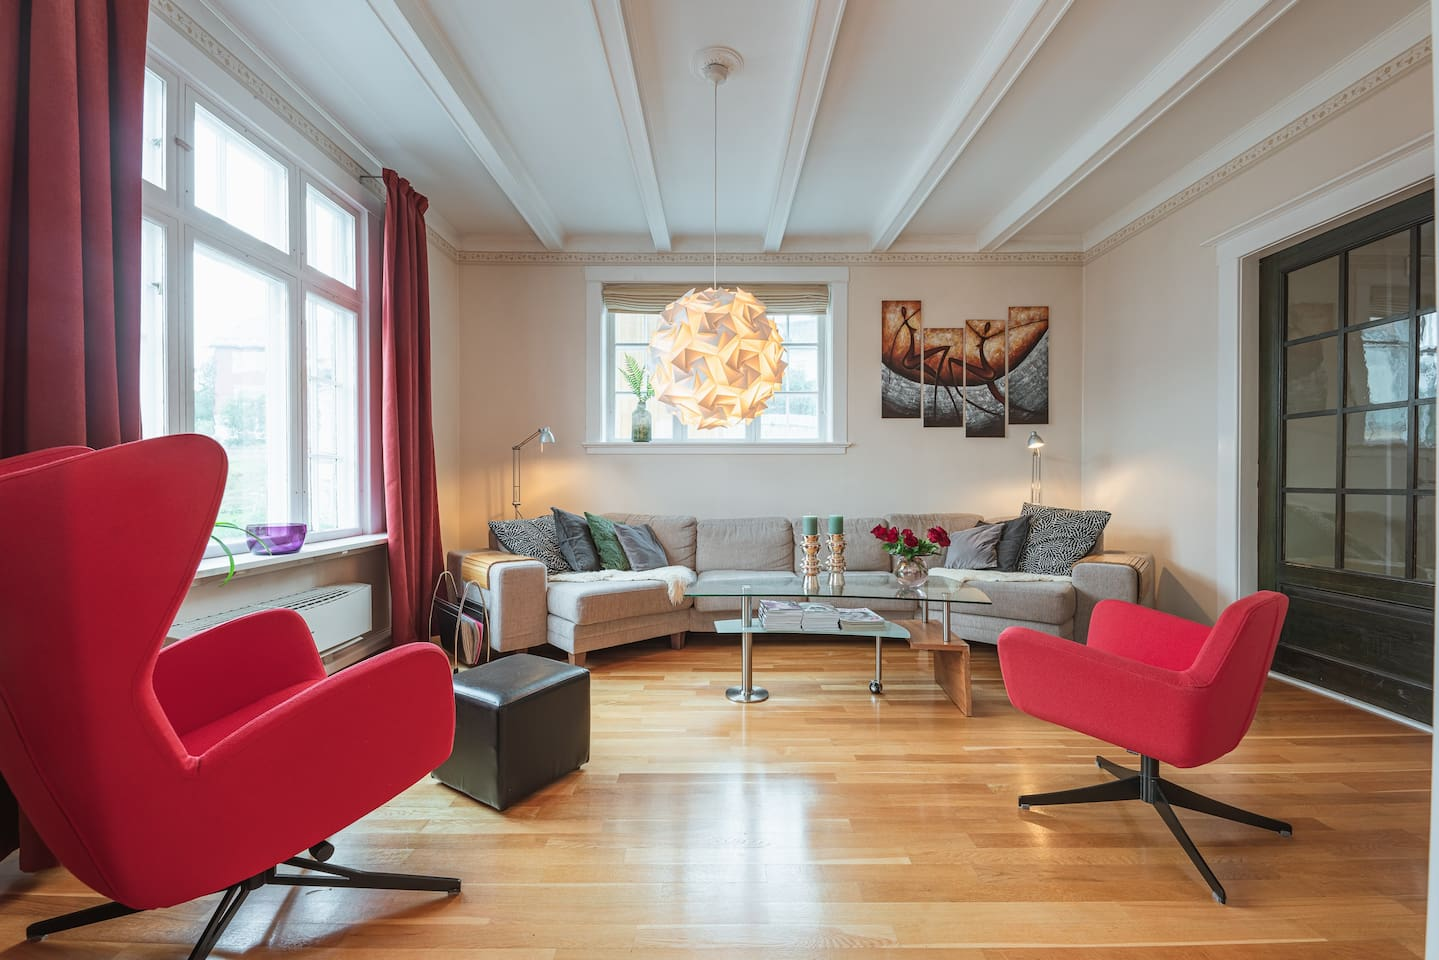 Innermost living room with comfortable seating.